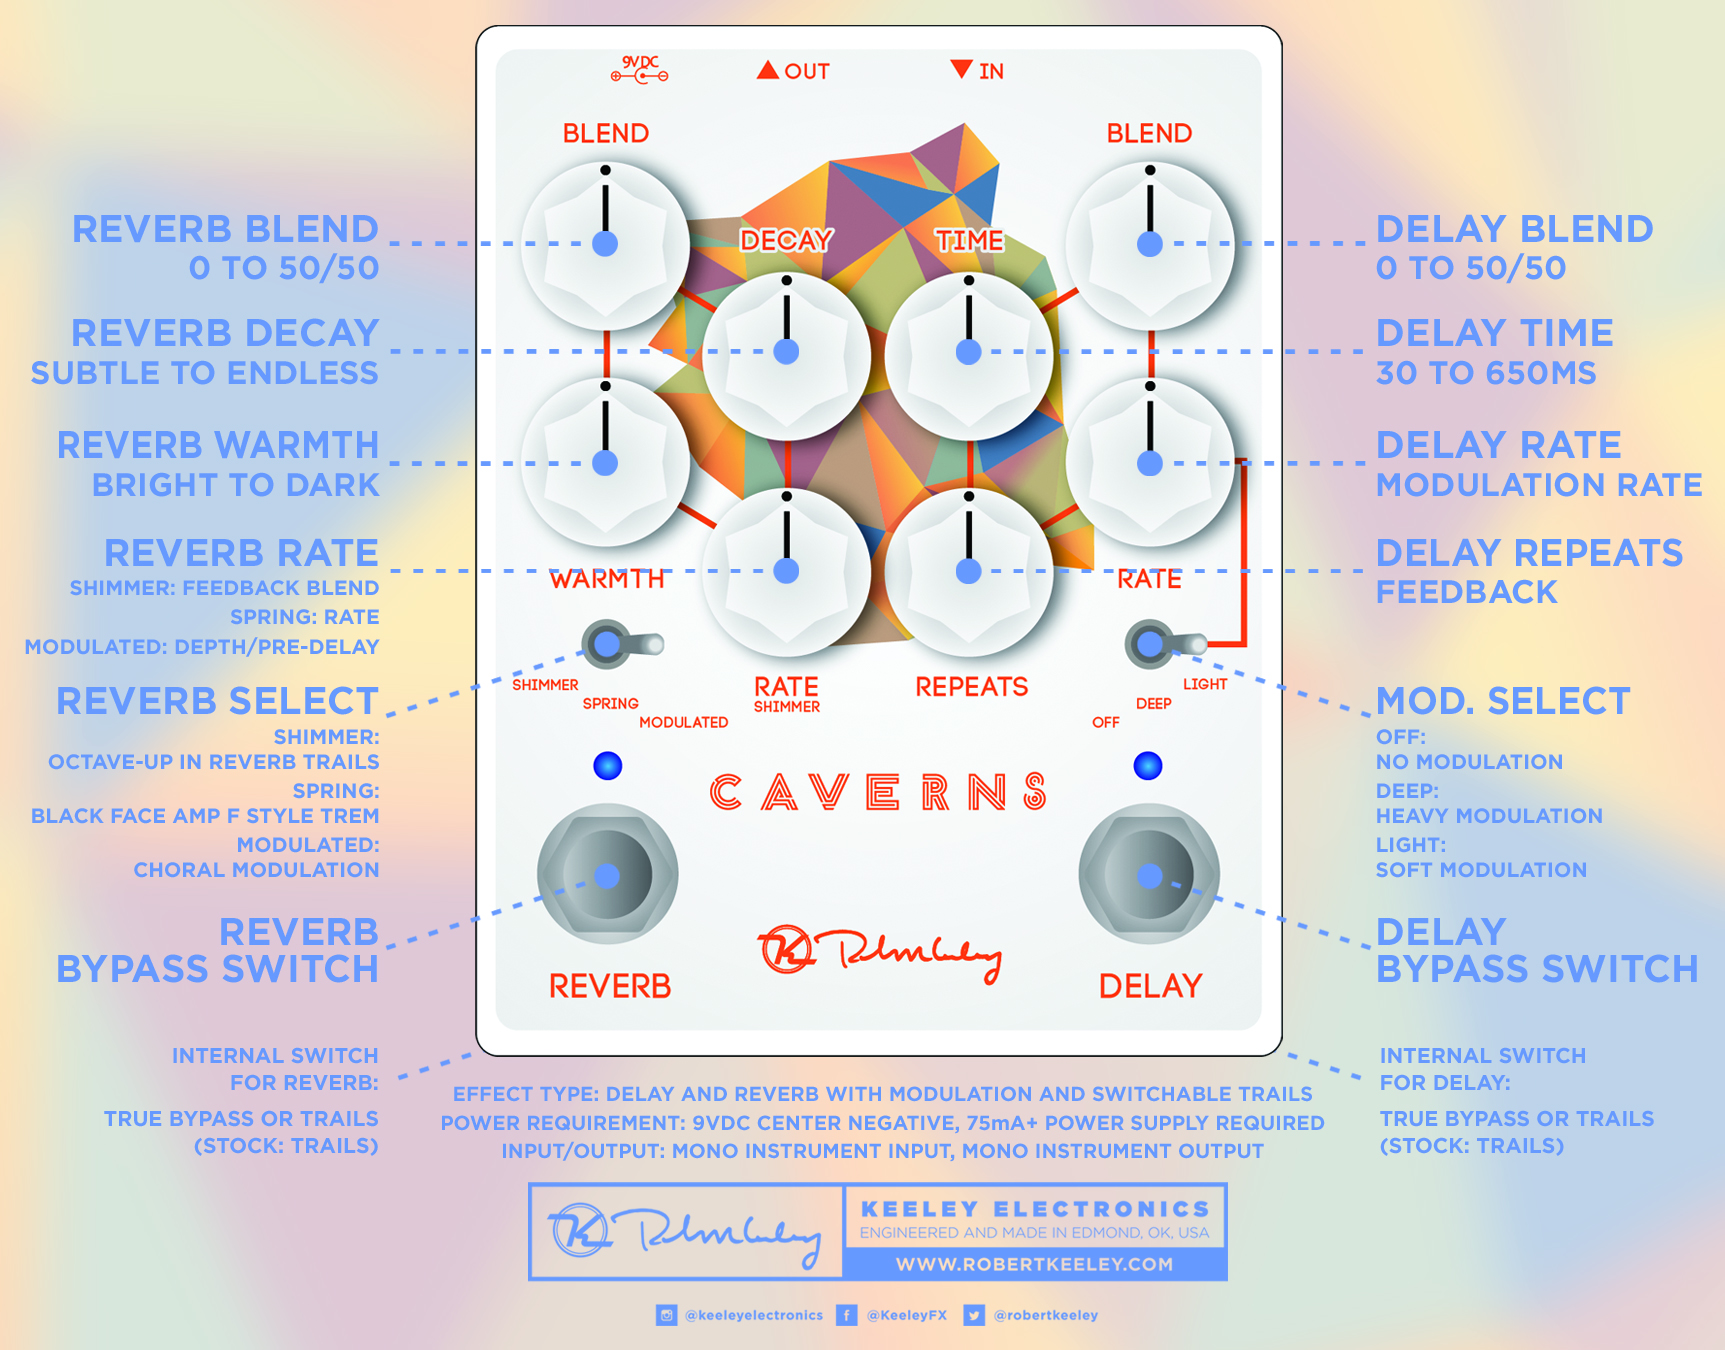 Caverns Delay Reverb V2 Electronic Lamp Switch Including Time Option Keeley Electronics Instructions